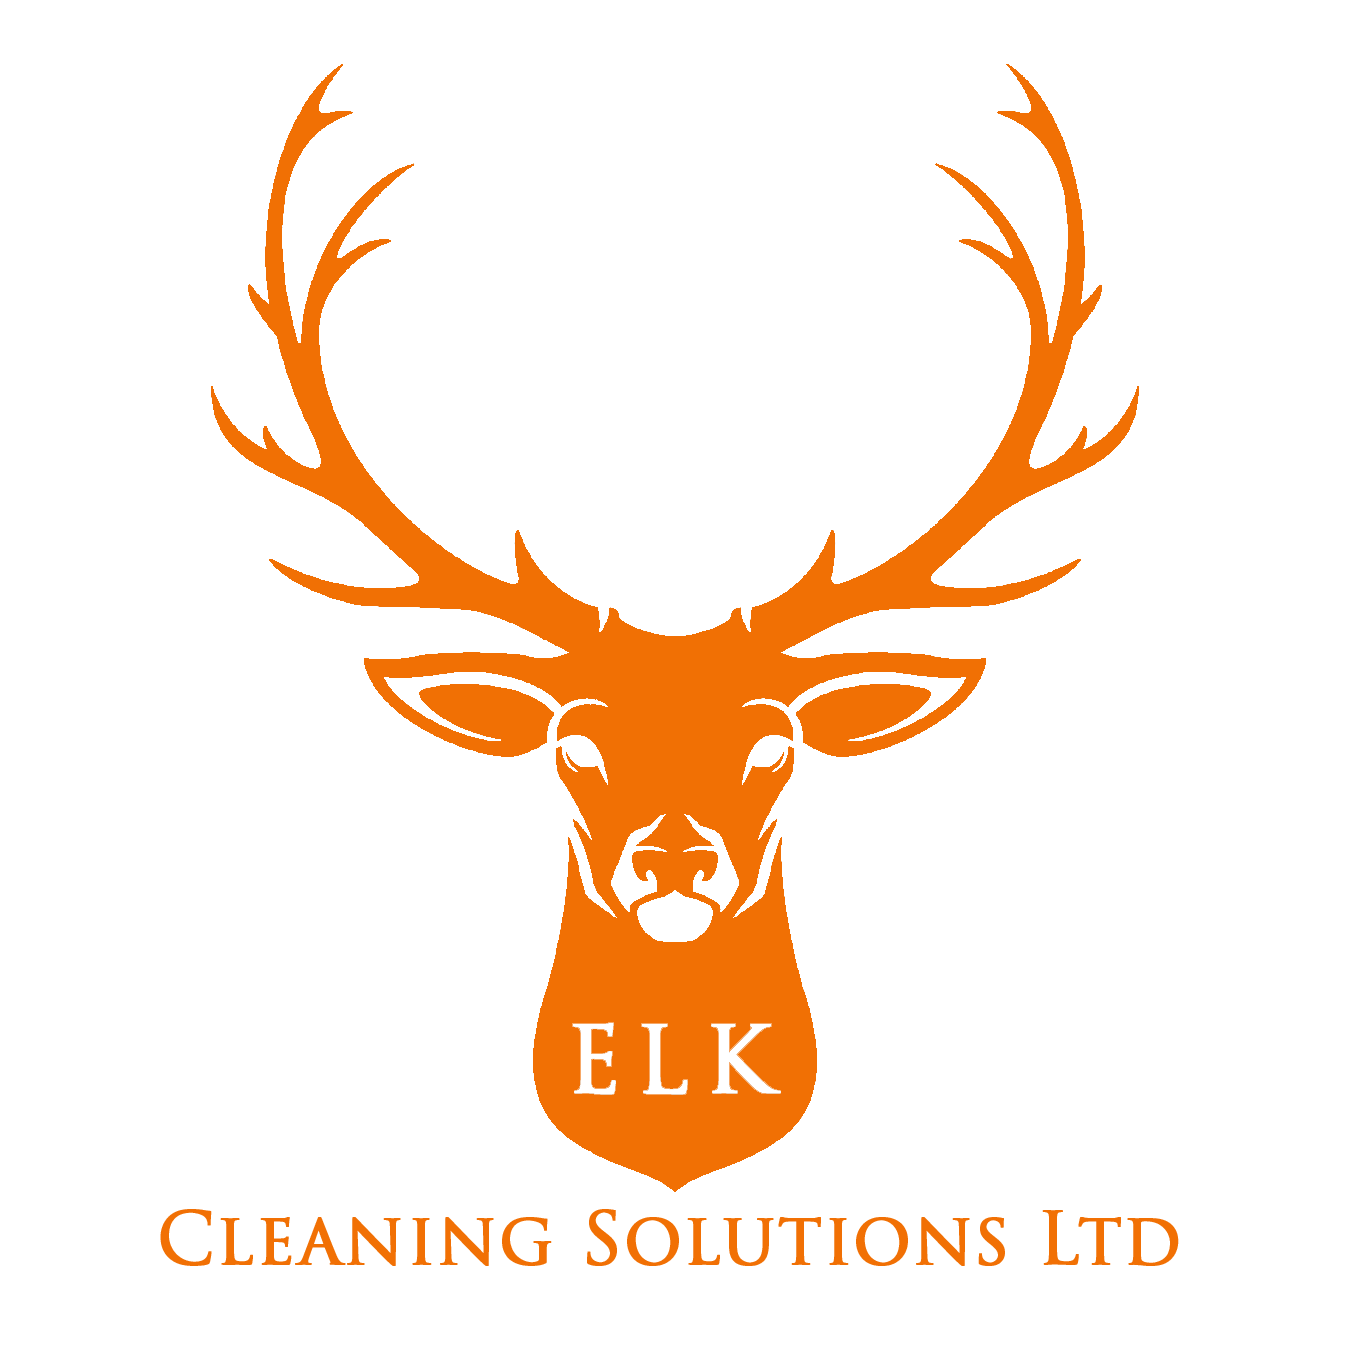 ELK Cleaning Solutions